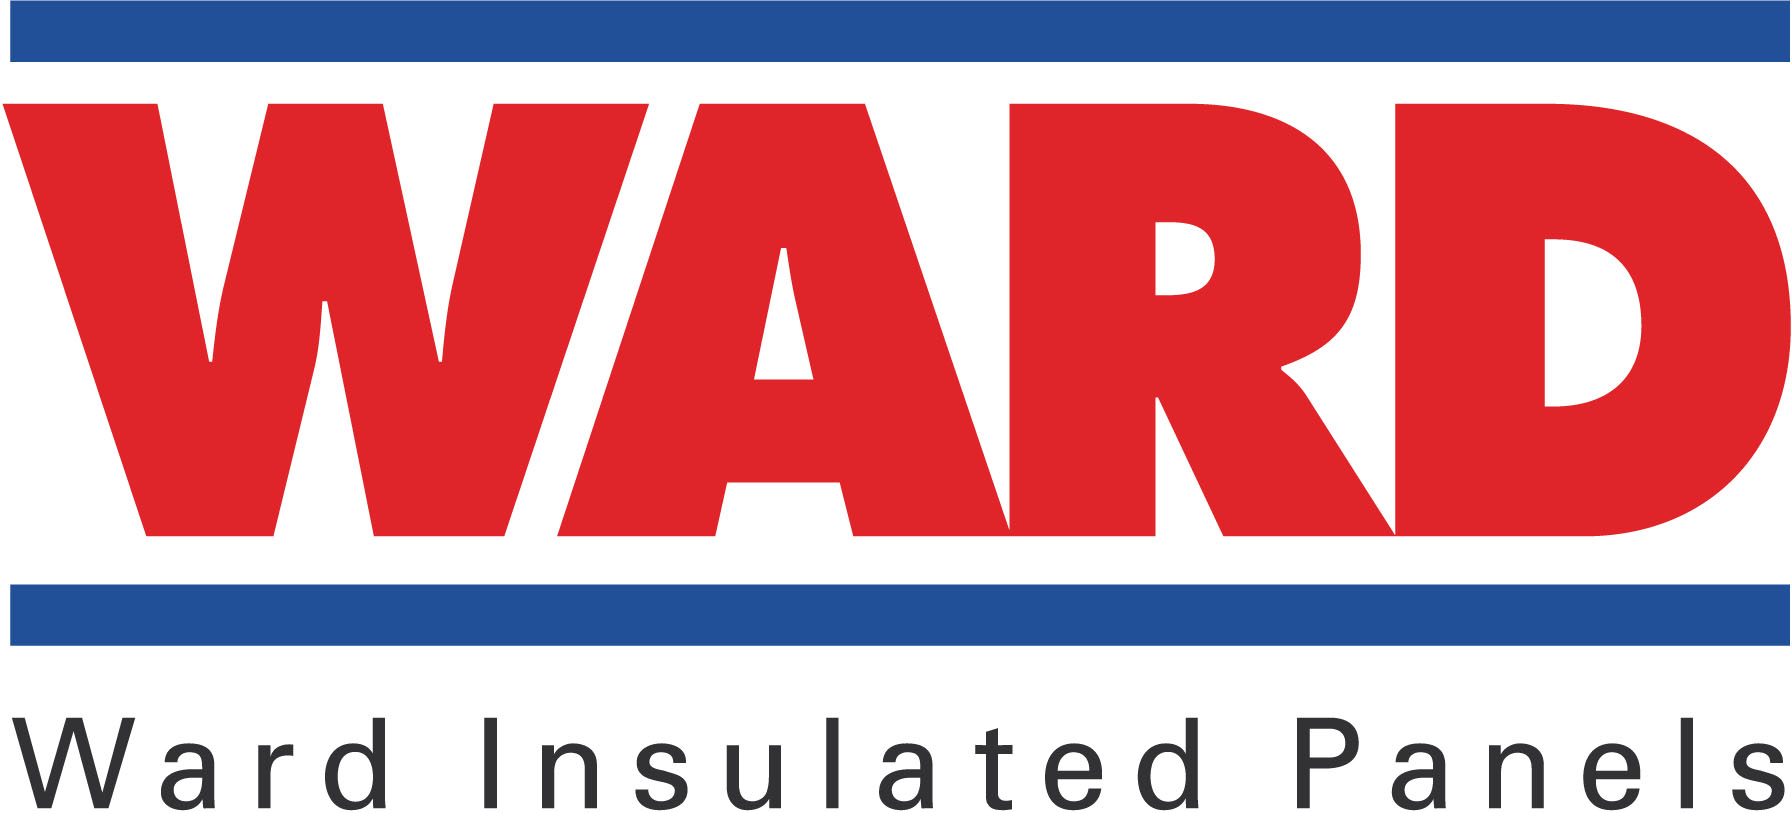 Ward Insulated Panels